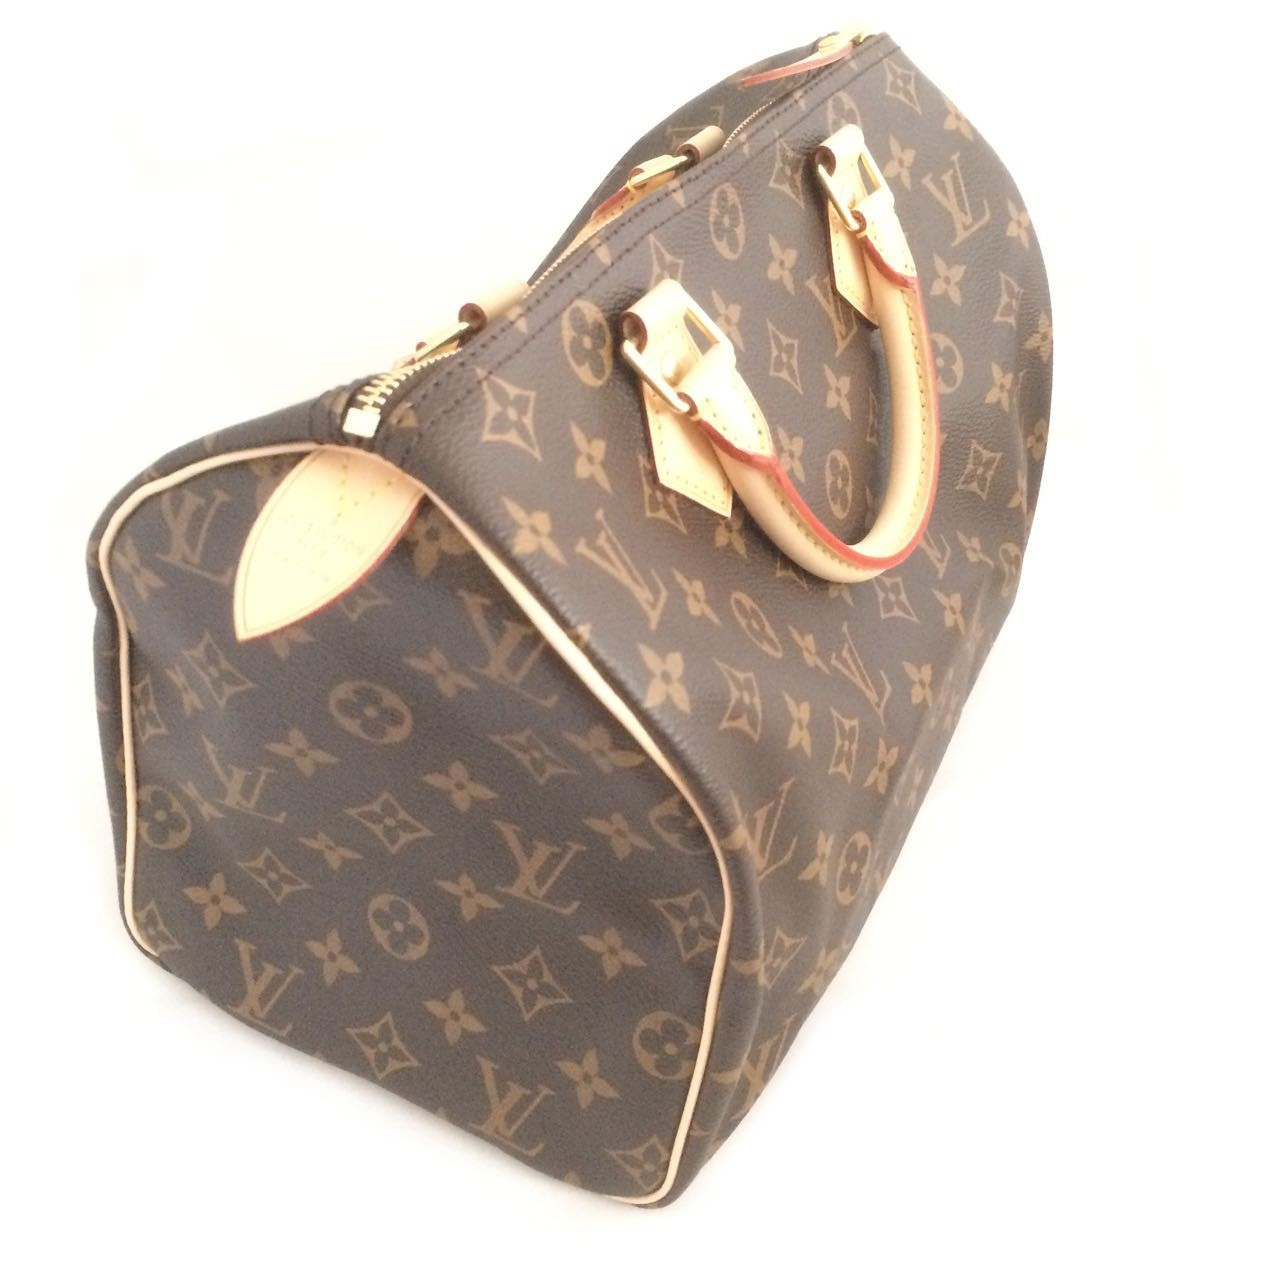 680c76940 LOUIS VUITTON M41108 SPEEDY 30 MONOGRAM CANVAS NON STRAP BOWLING HANDBAG